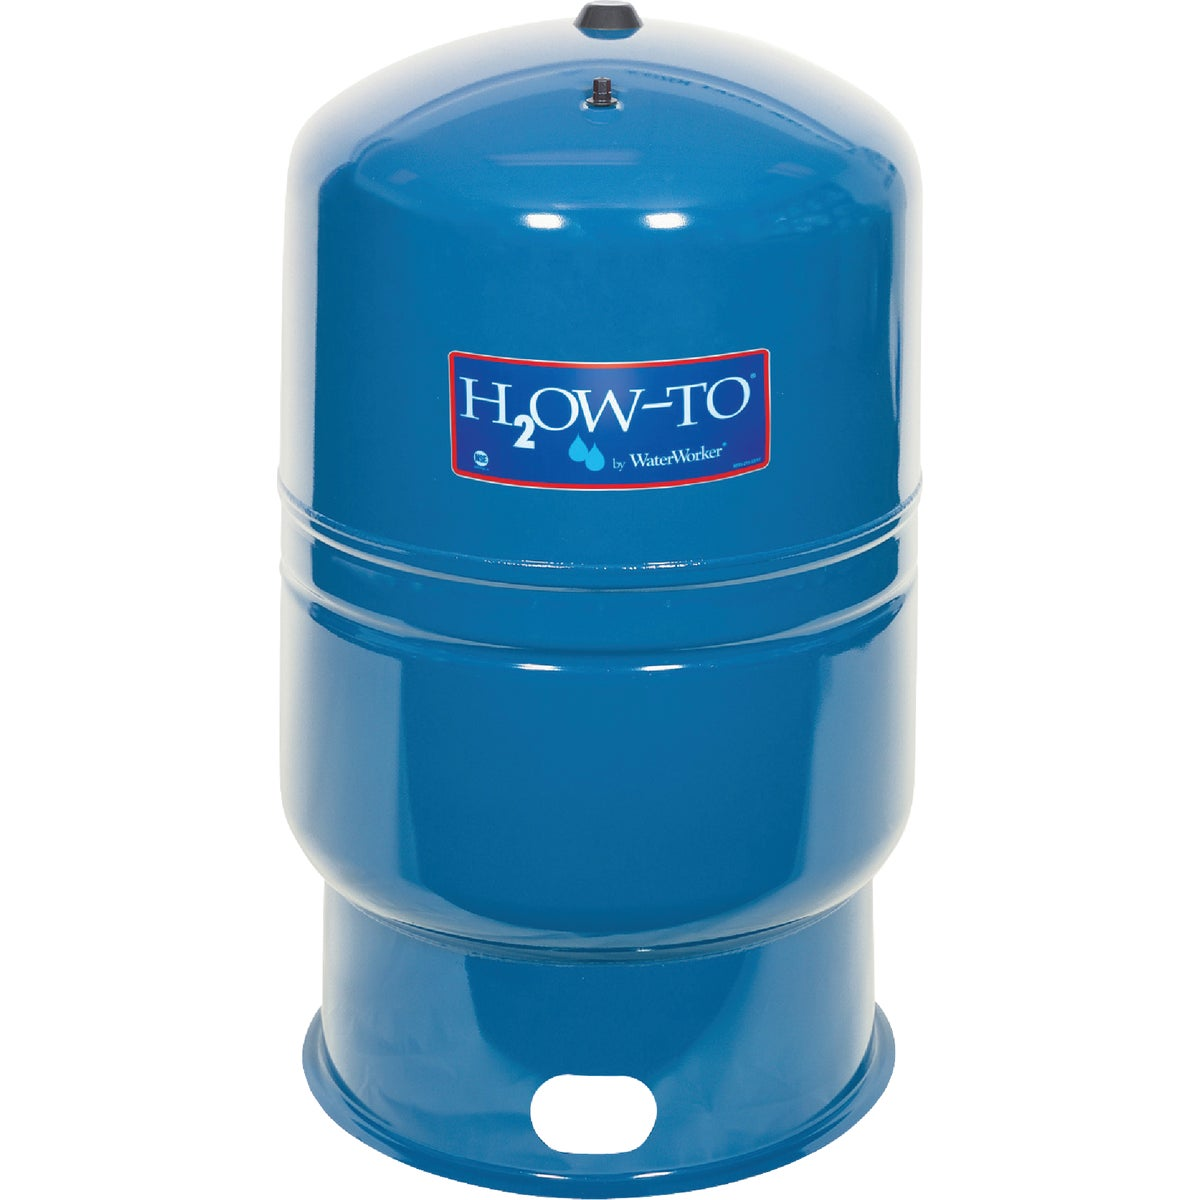 62GAL VERTICAL WELL TANK - HT-62B by Water Worker